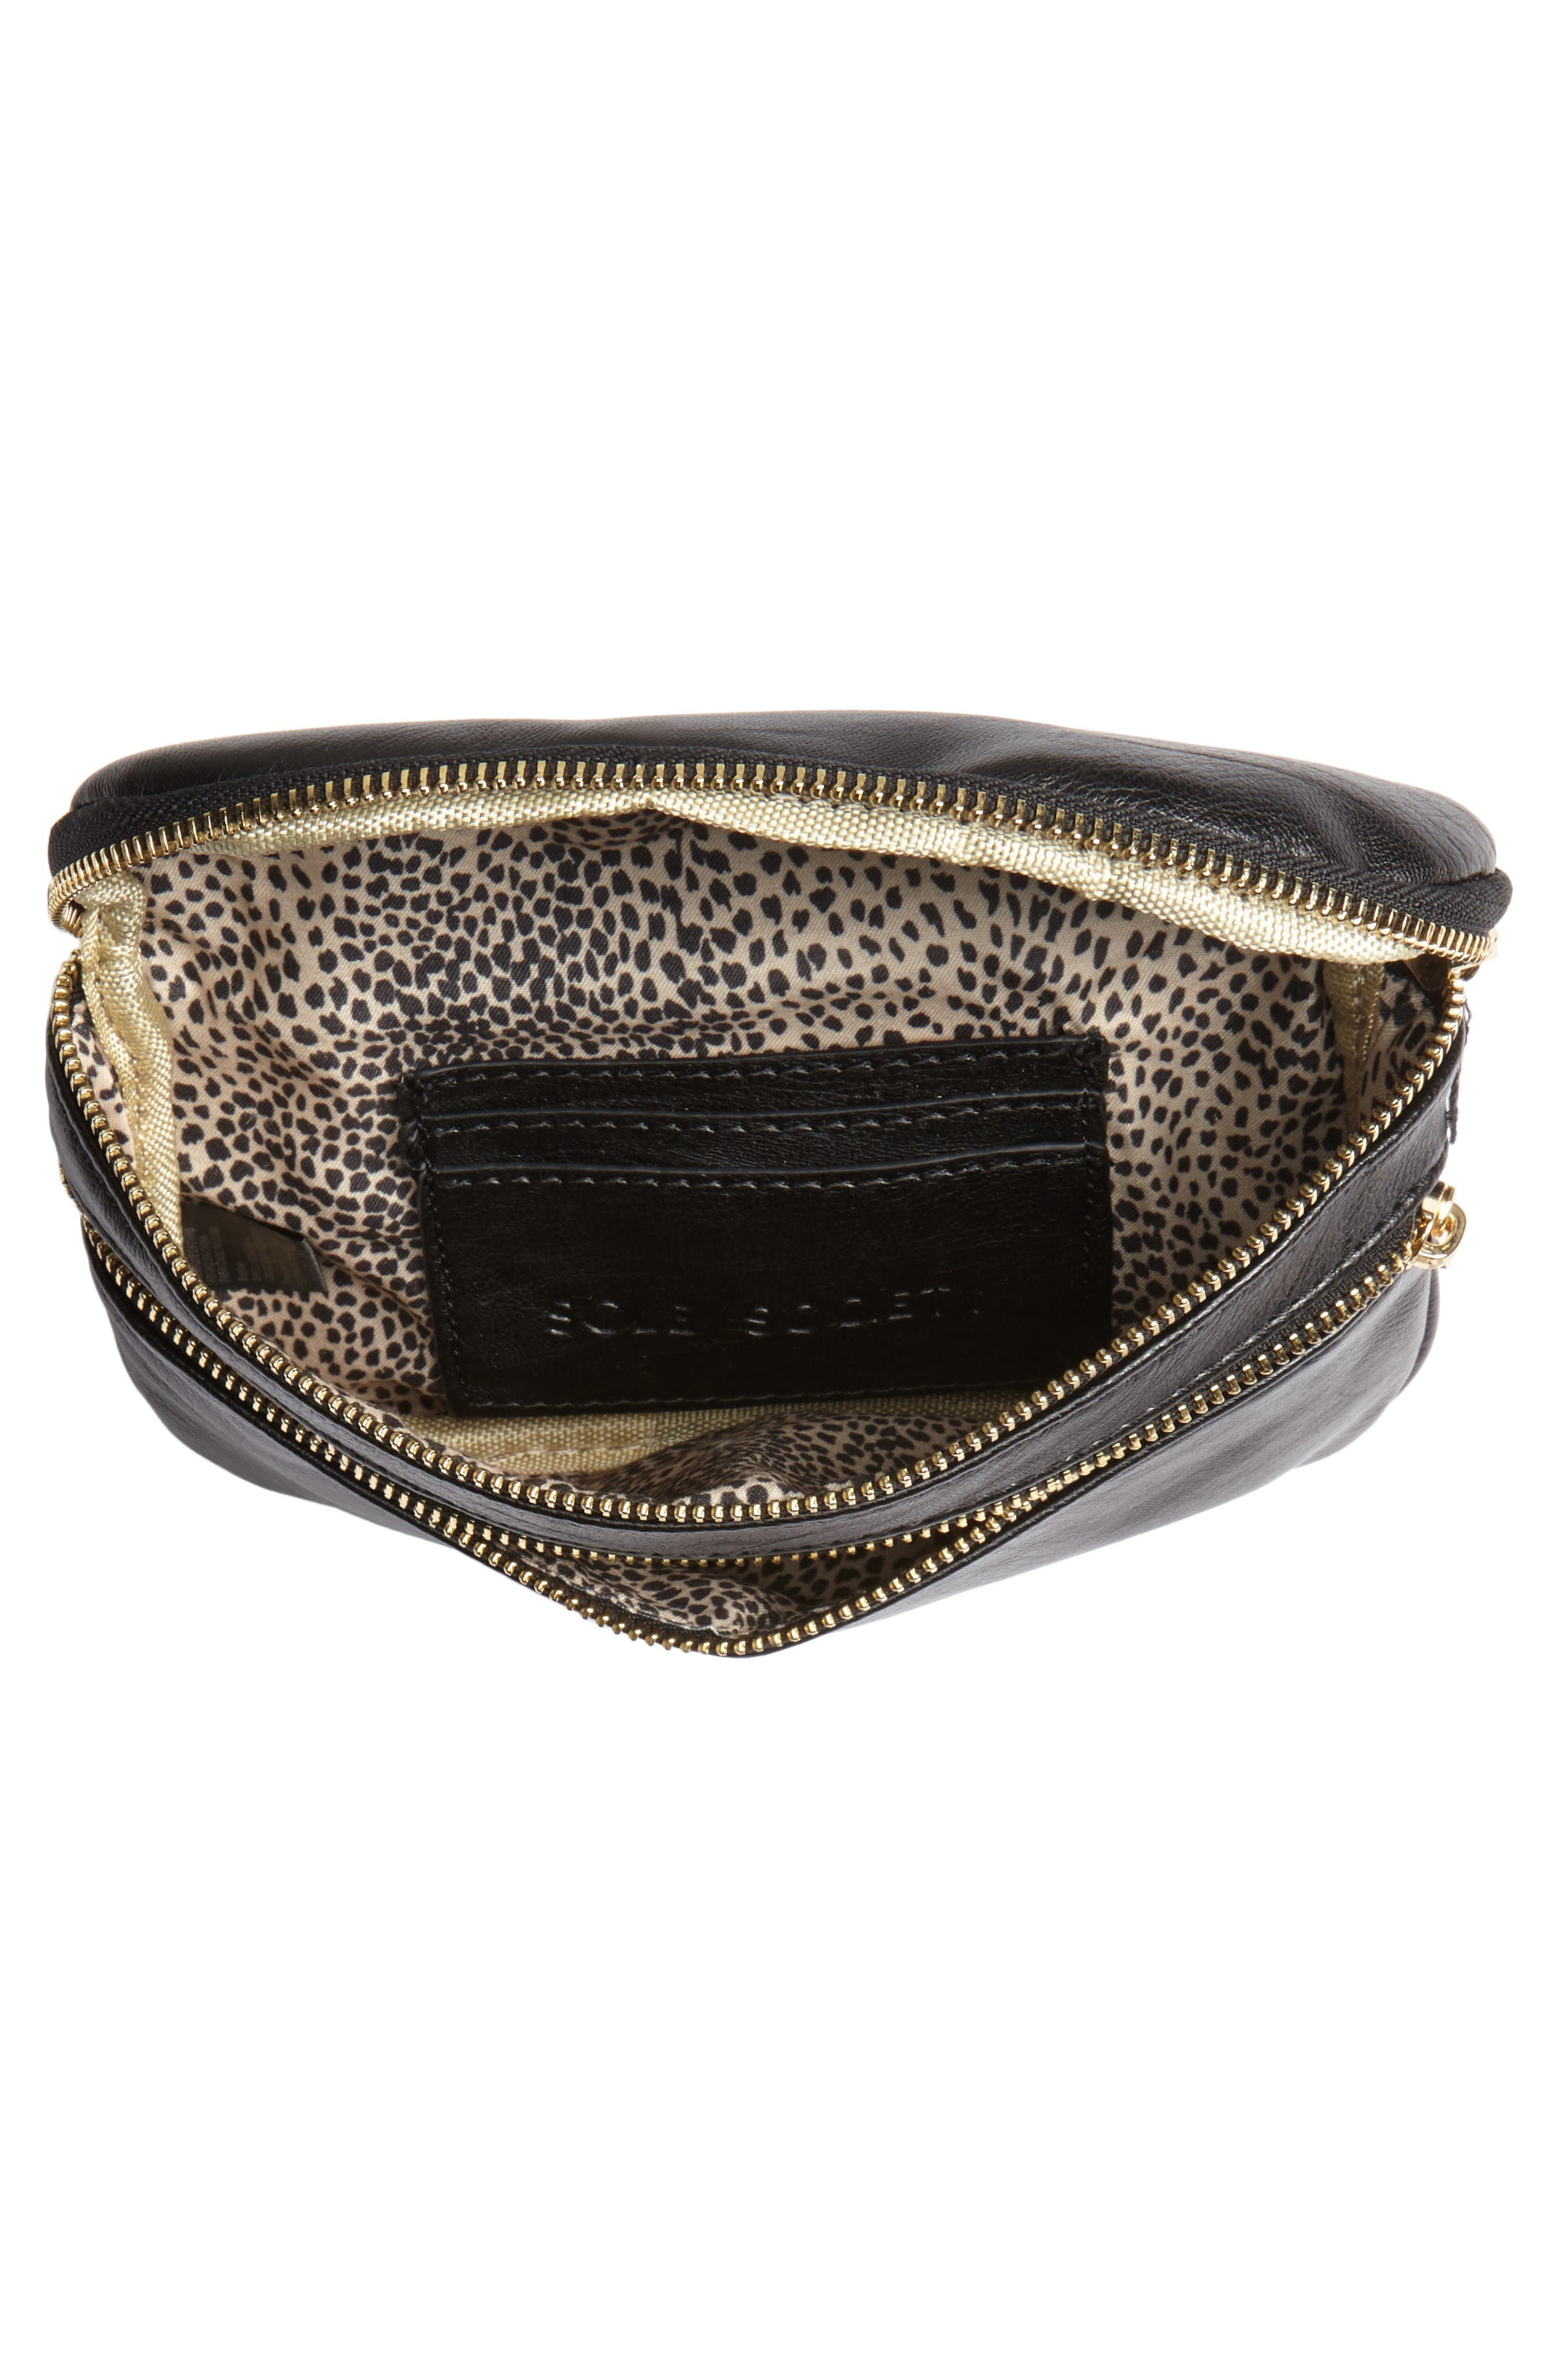 Cadee Faux Leather Belt Bag,                             Alternate thumbnail 5, color,                             BLACK